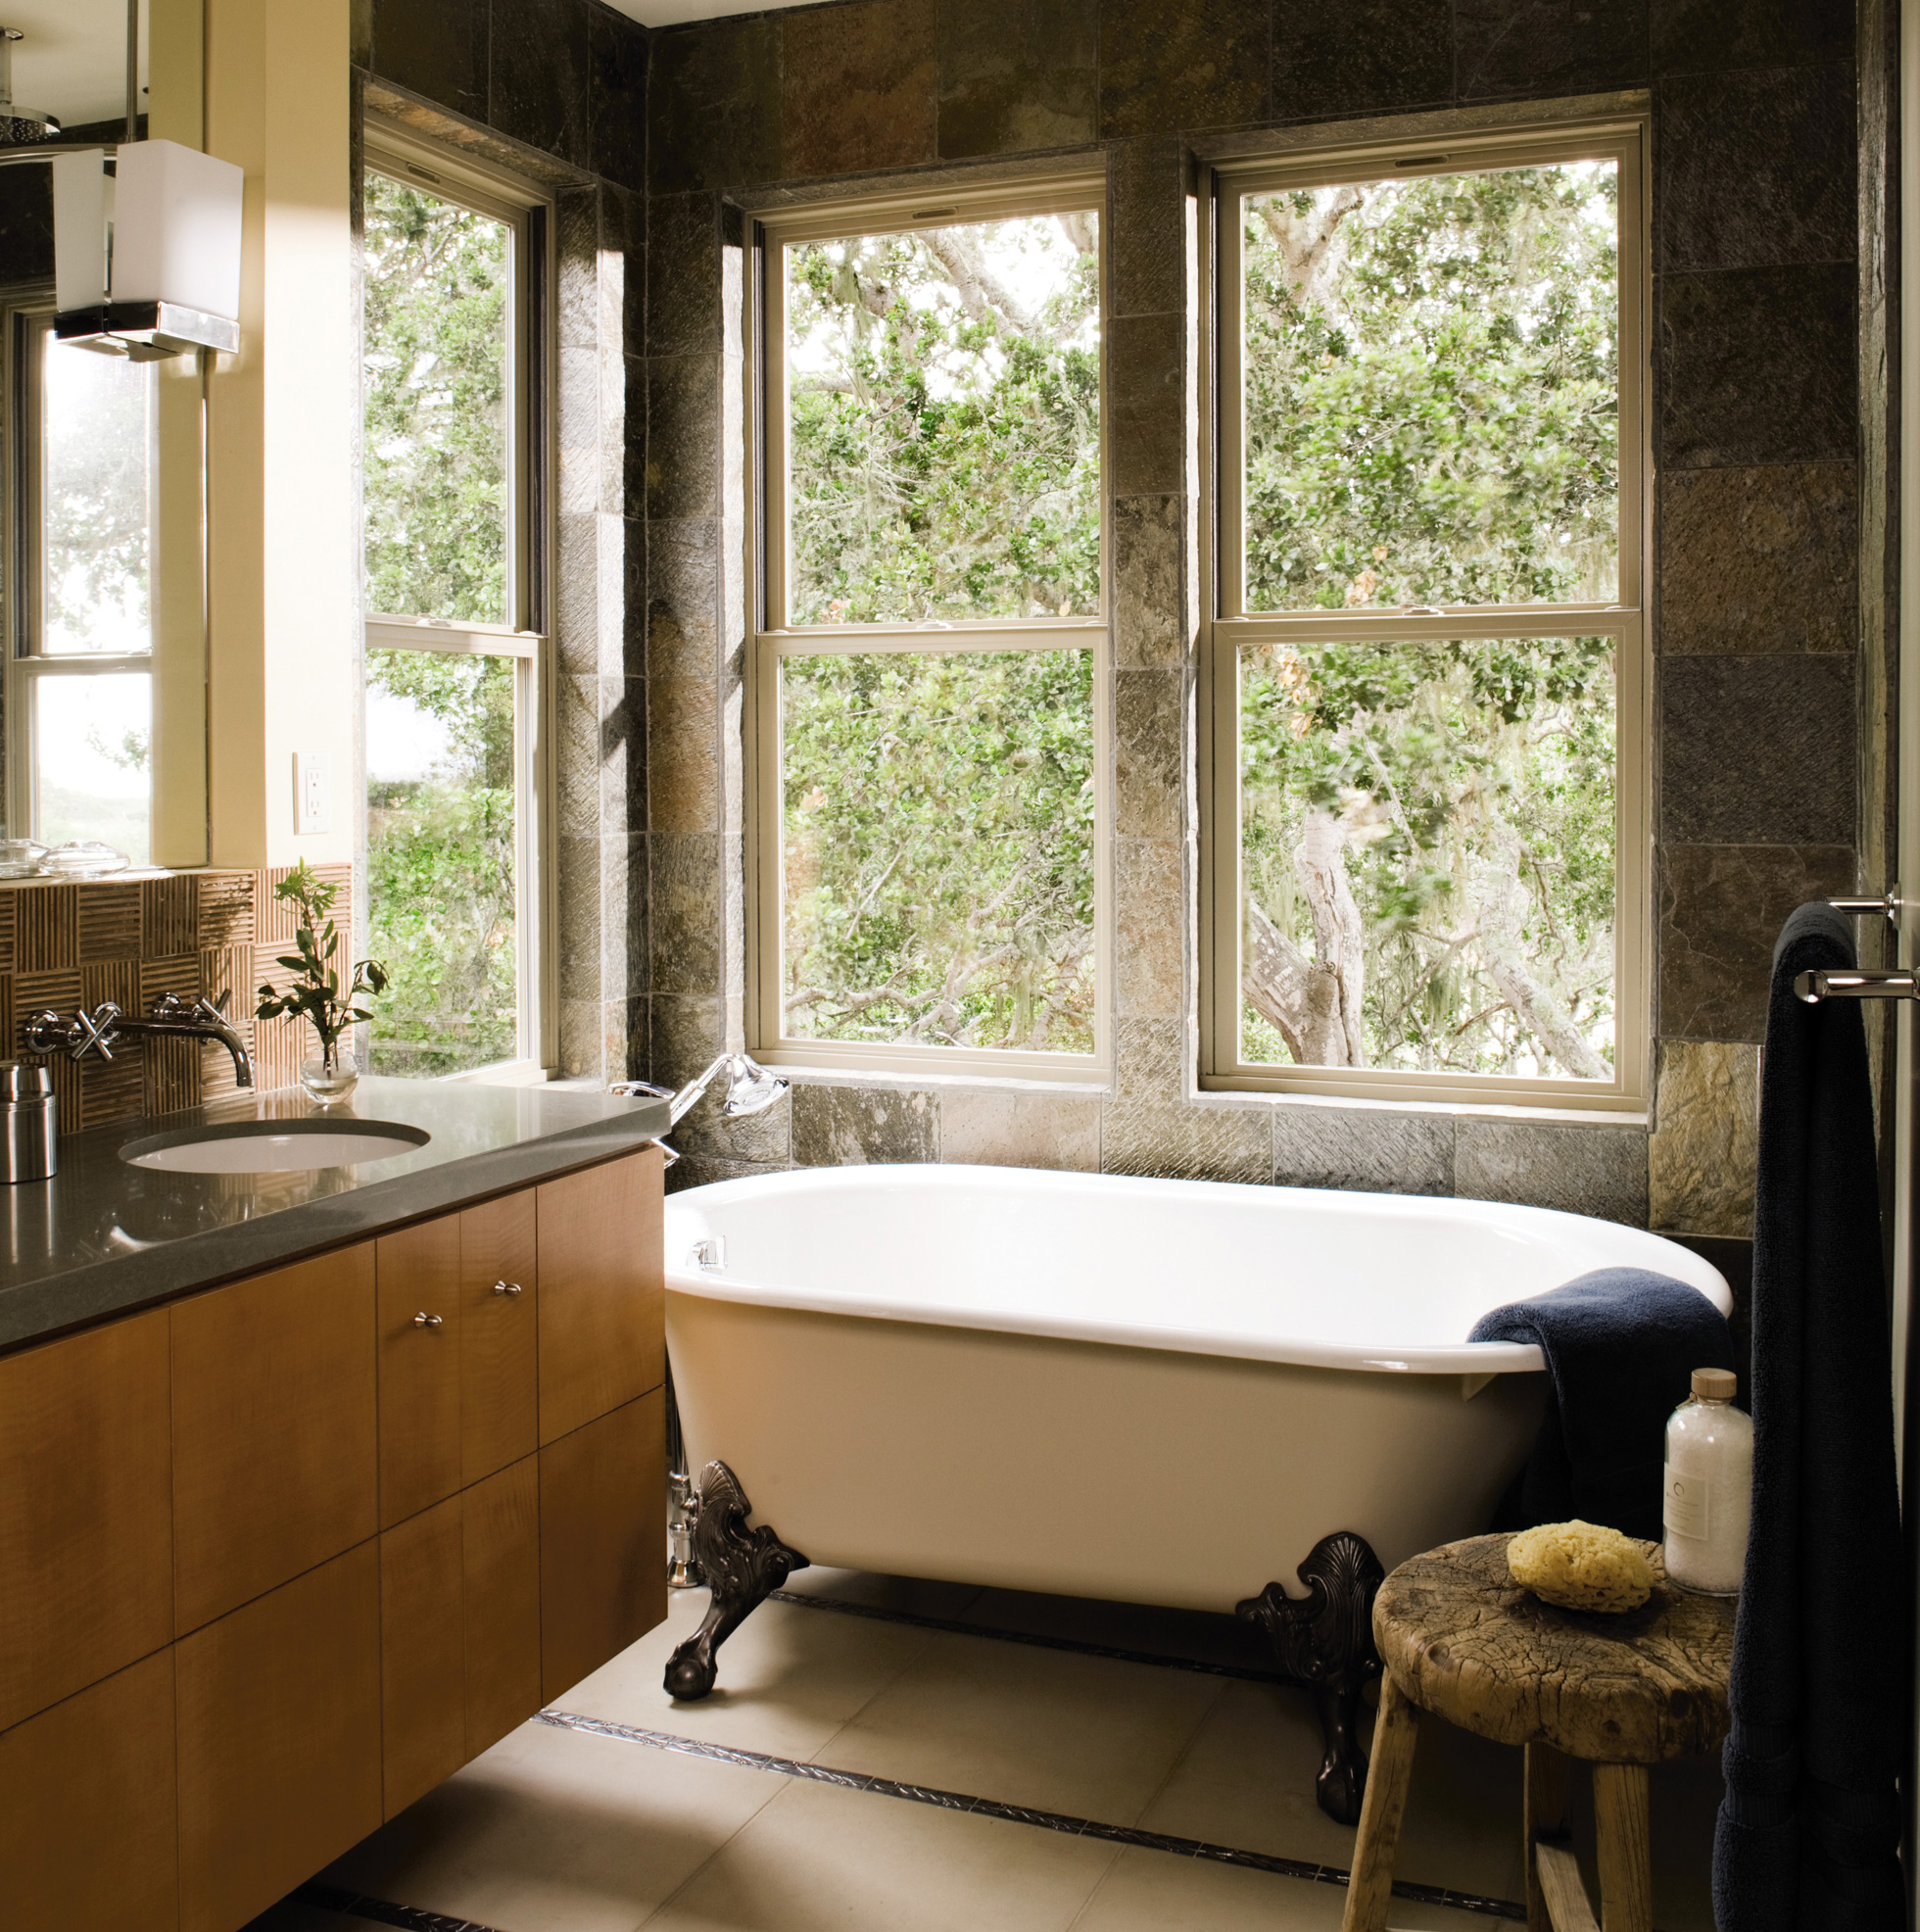 Low-maintenance fiberglass windows in a bathroom